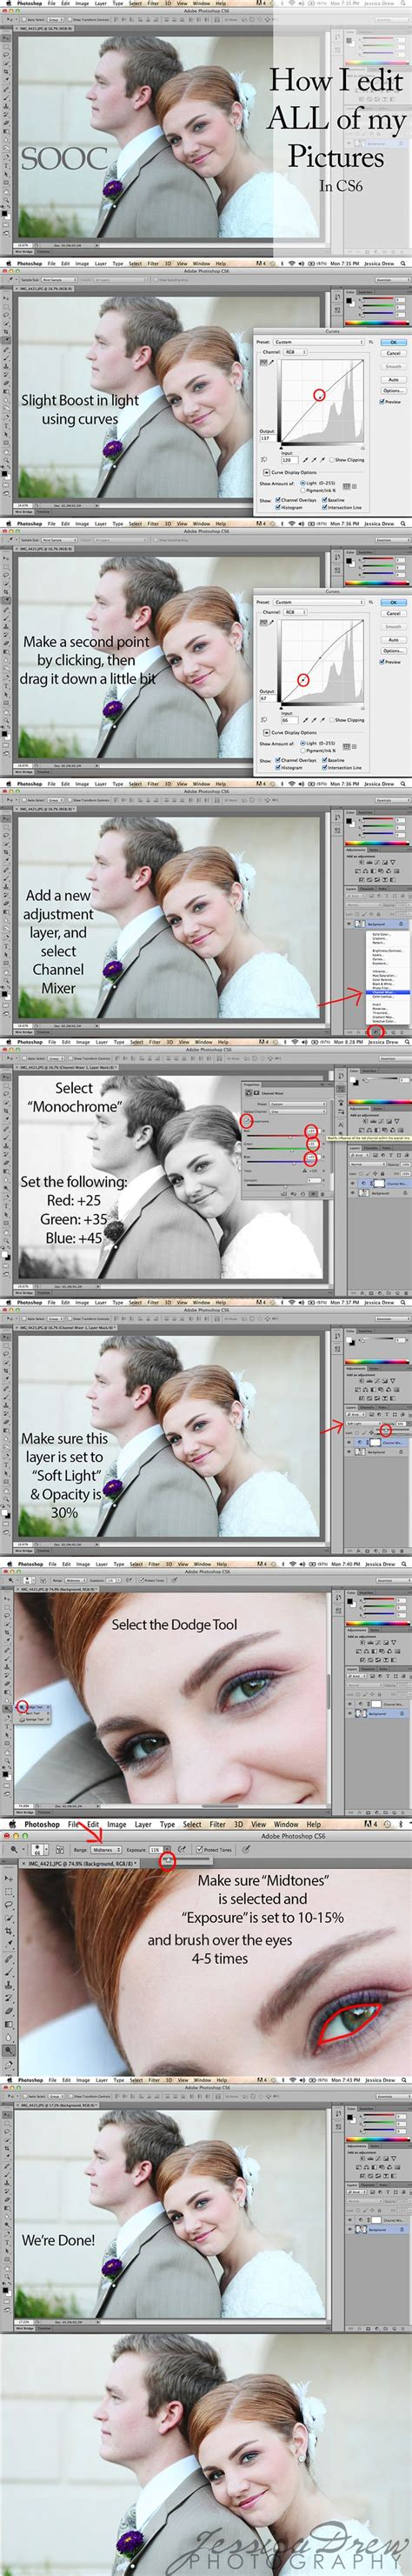 tutorial photo editing using photoshop basic edit in cs6 photography pinterest photoshop